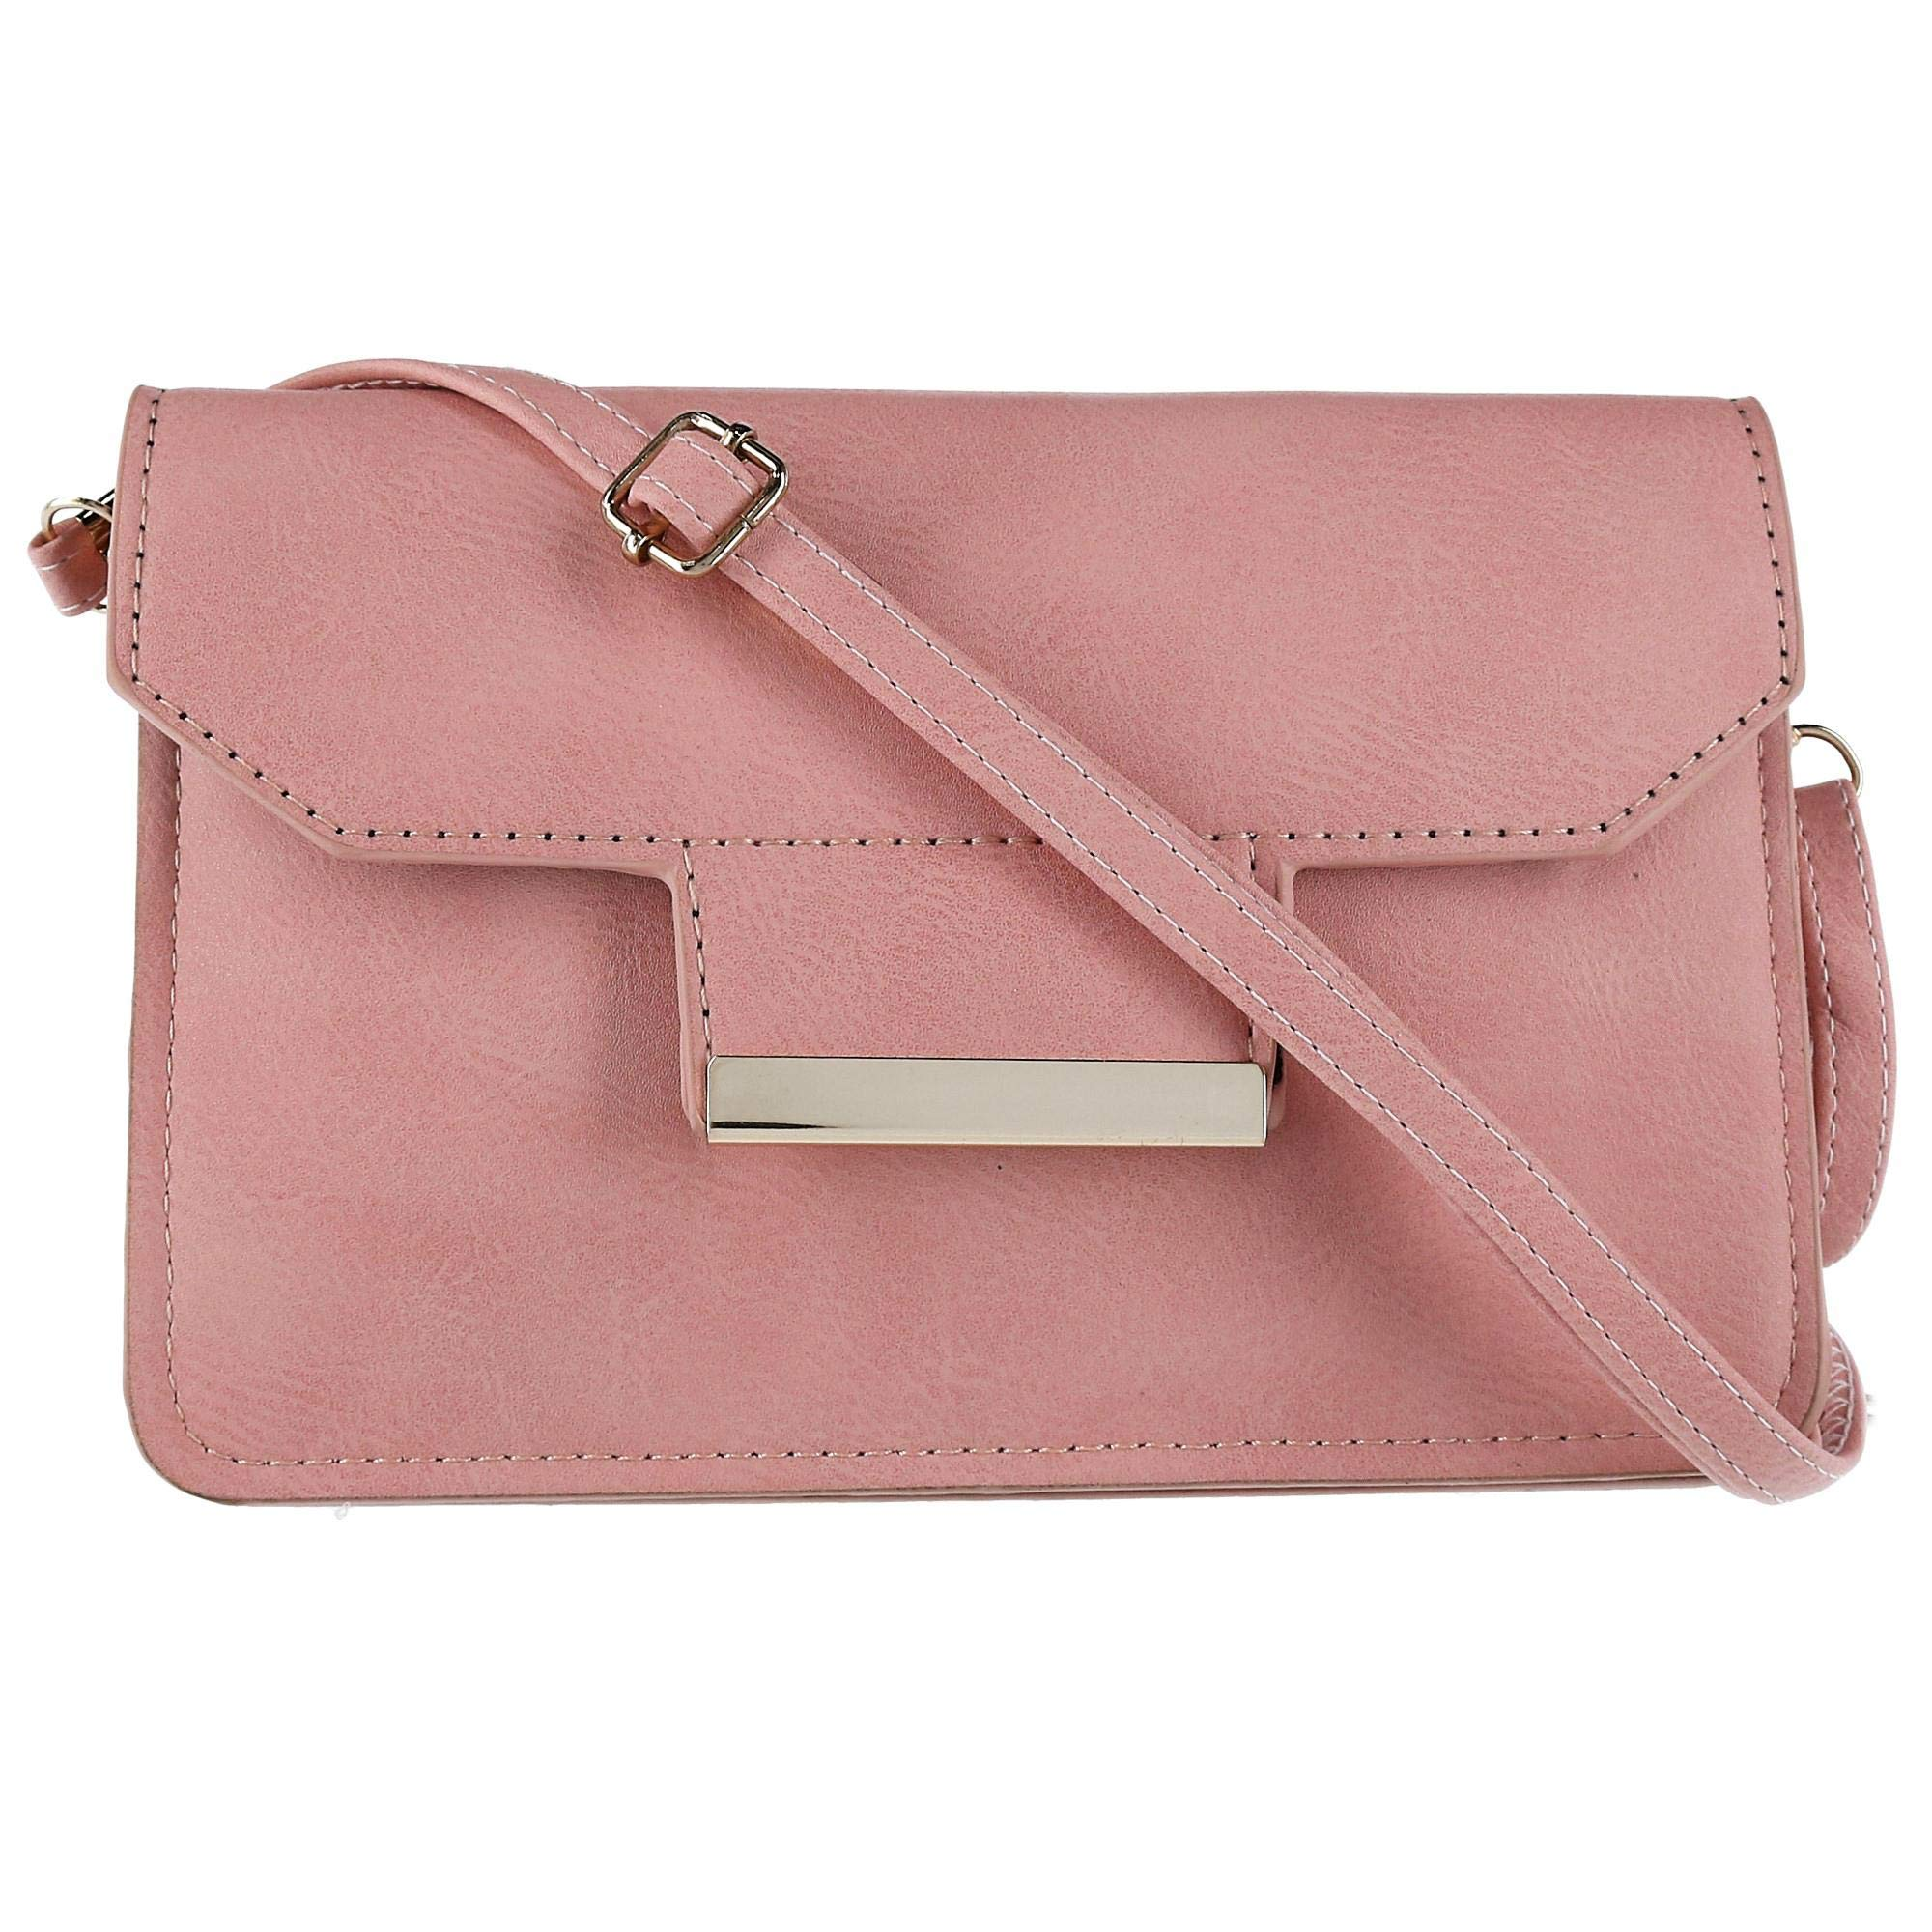 CTM Women's Clutch with Detachable Strap and Gold Trim, Rose